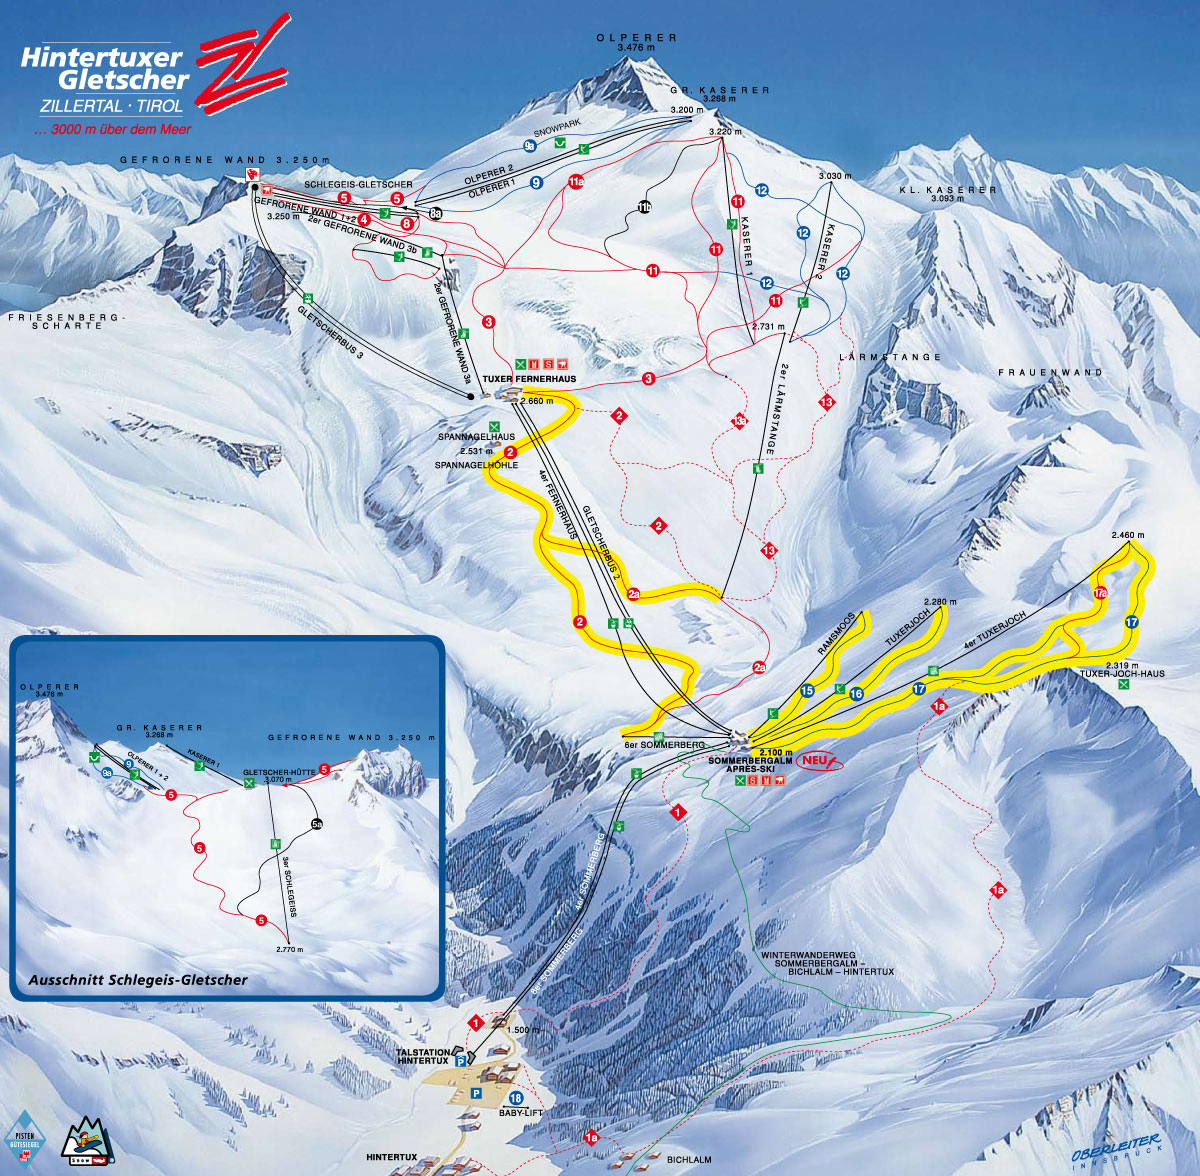 south dakota ski resorts map with Hintertuxglacier on Mt Rose Ski Tahoe furthermore 987572 besides Kayak And Canoe On A Nebraska River Vacation further 6107 in addition Beijing 2022 Olympics Where Are The Ski Venues.